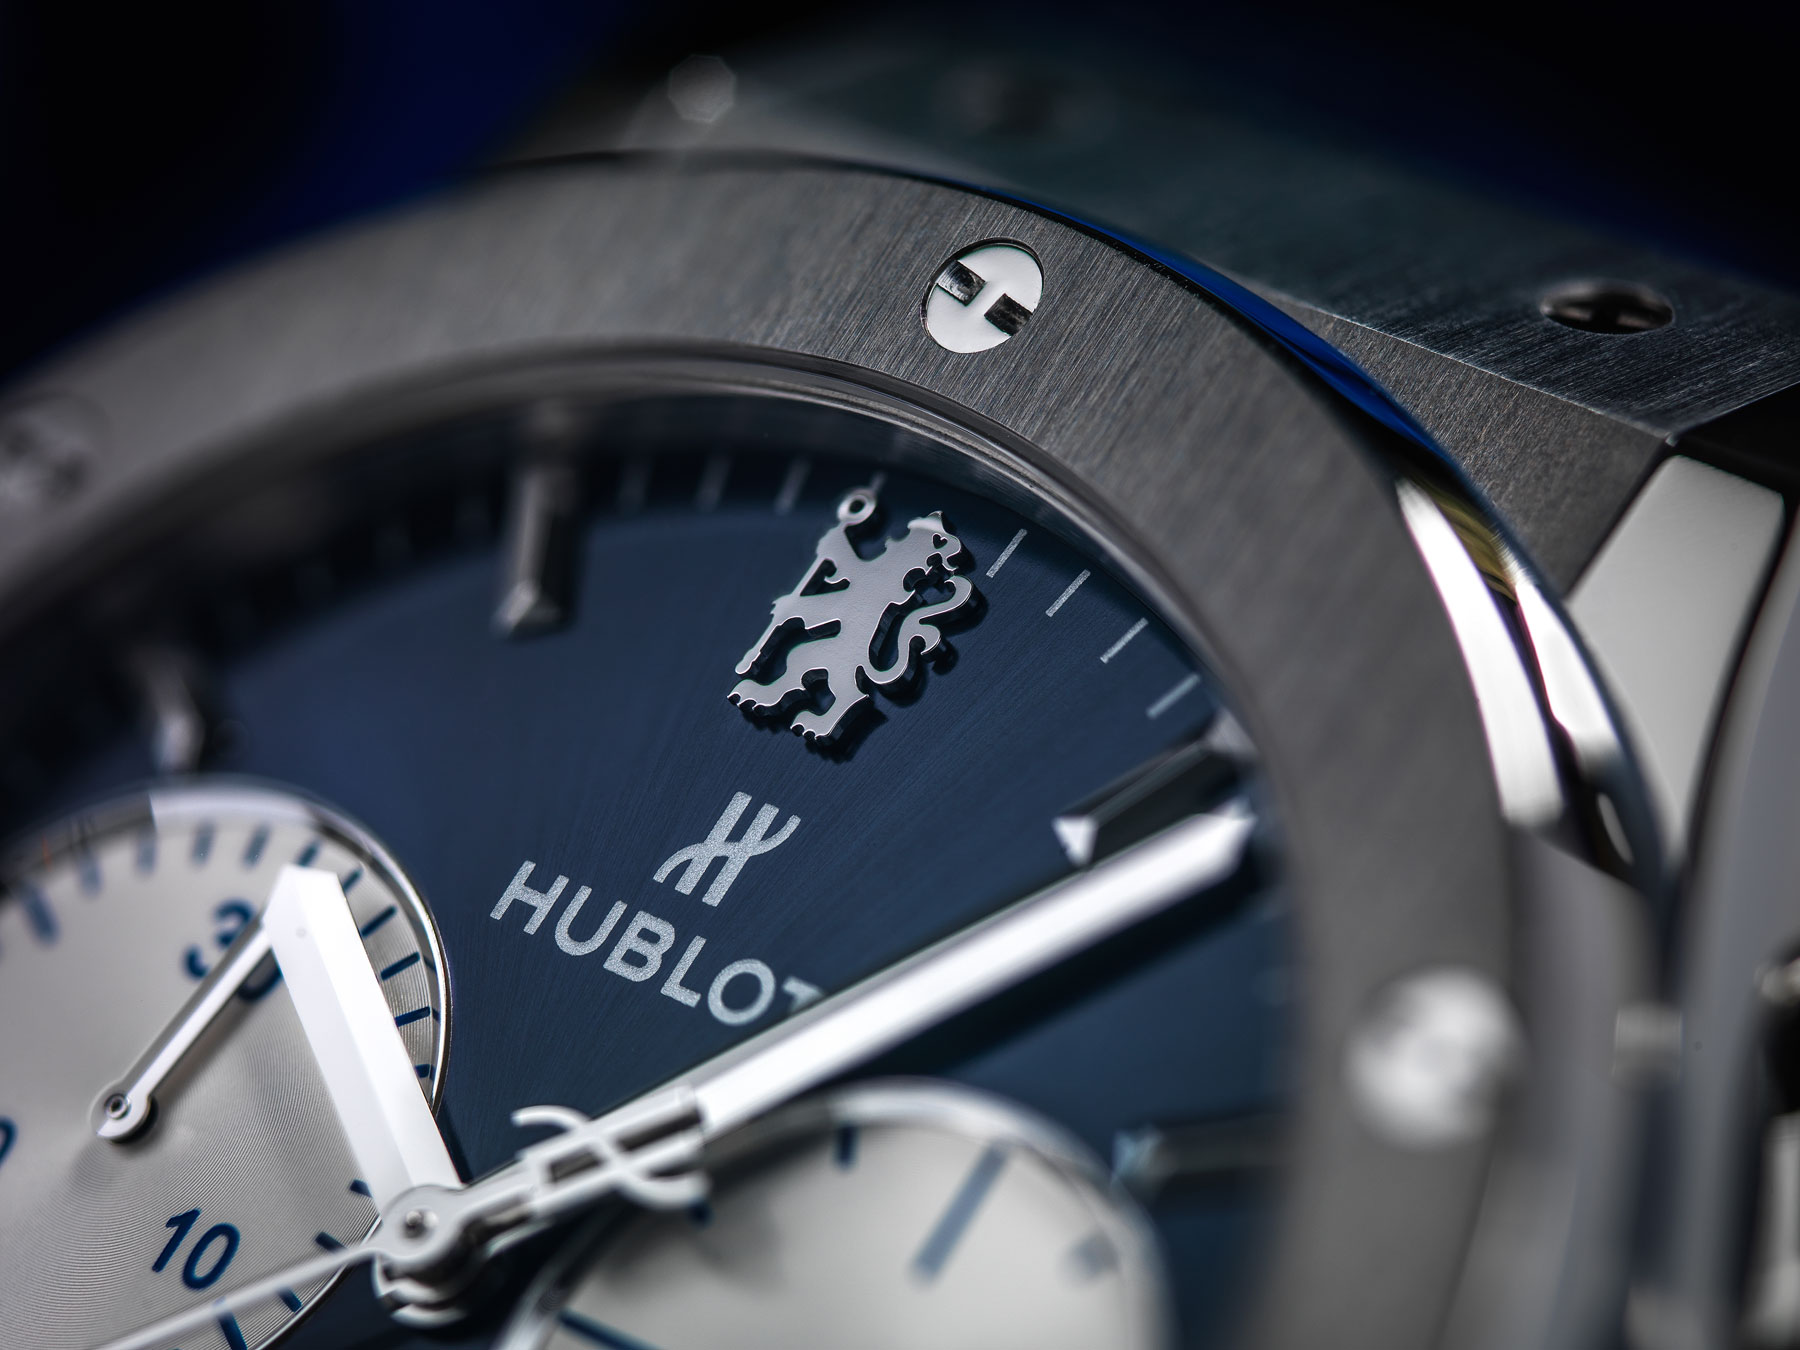 Hublot introduces The Classic Fusion Chronograph Chelsea